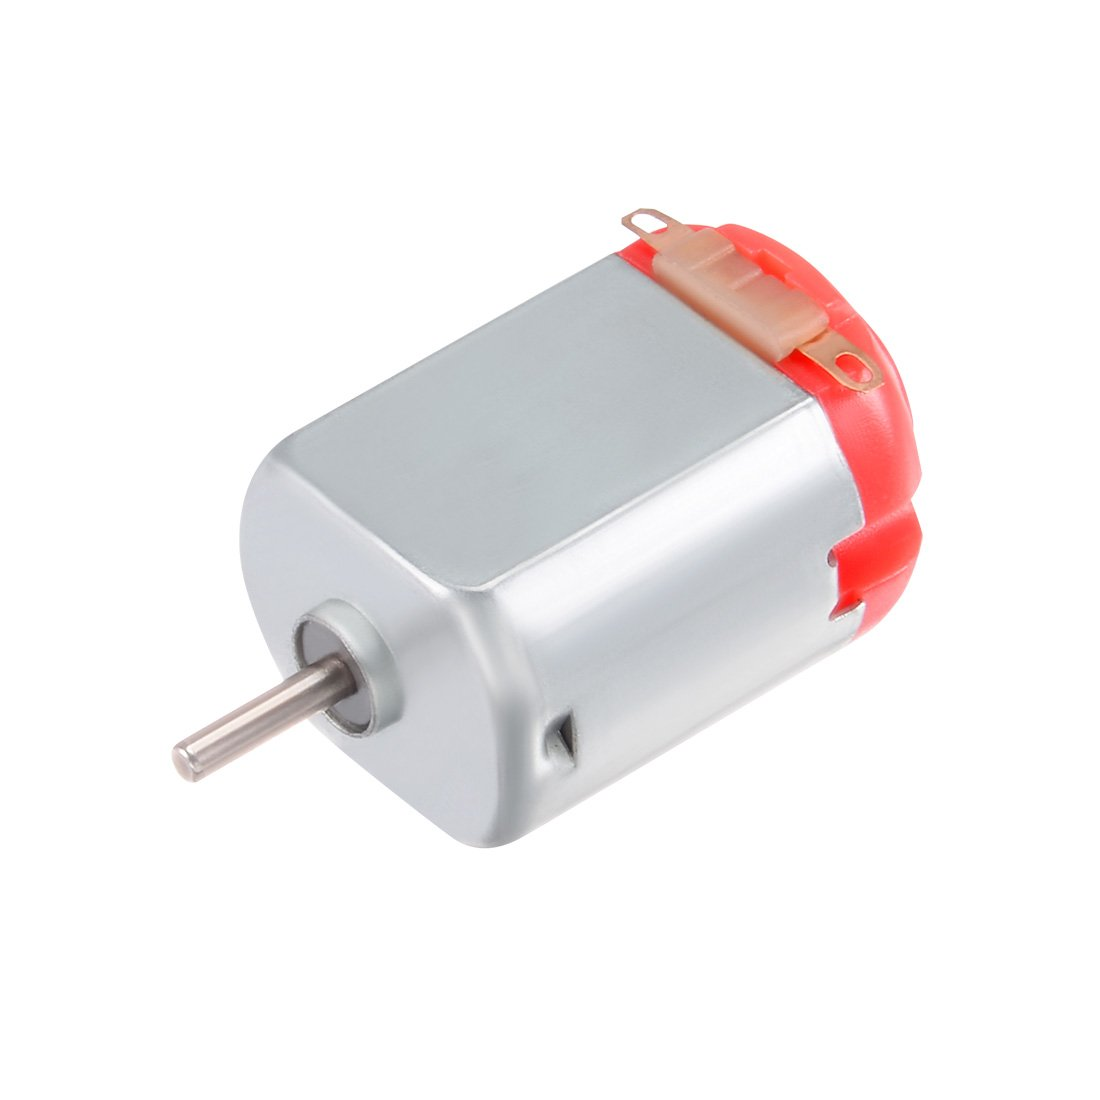 uxcell Small Motor DC 3V 8100RPM High Speed Motor for DIY Hobby Toy Cars Remote Control